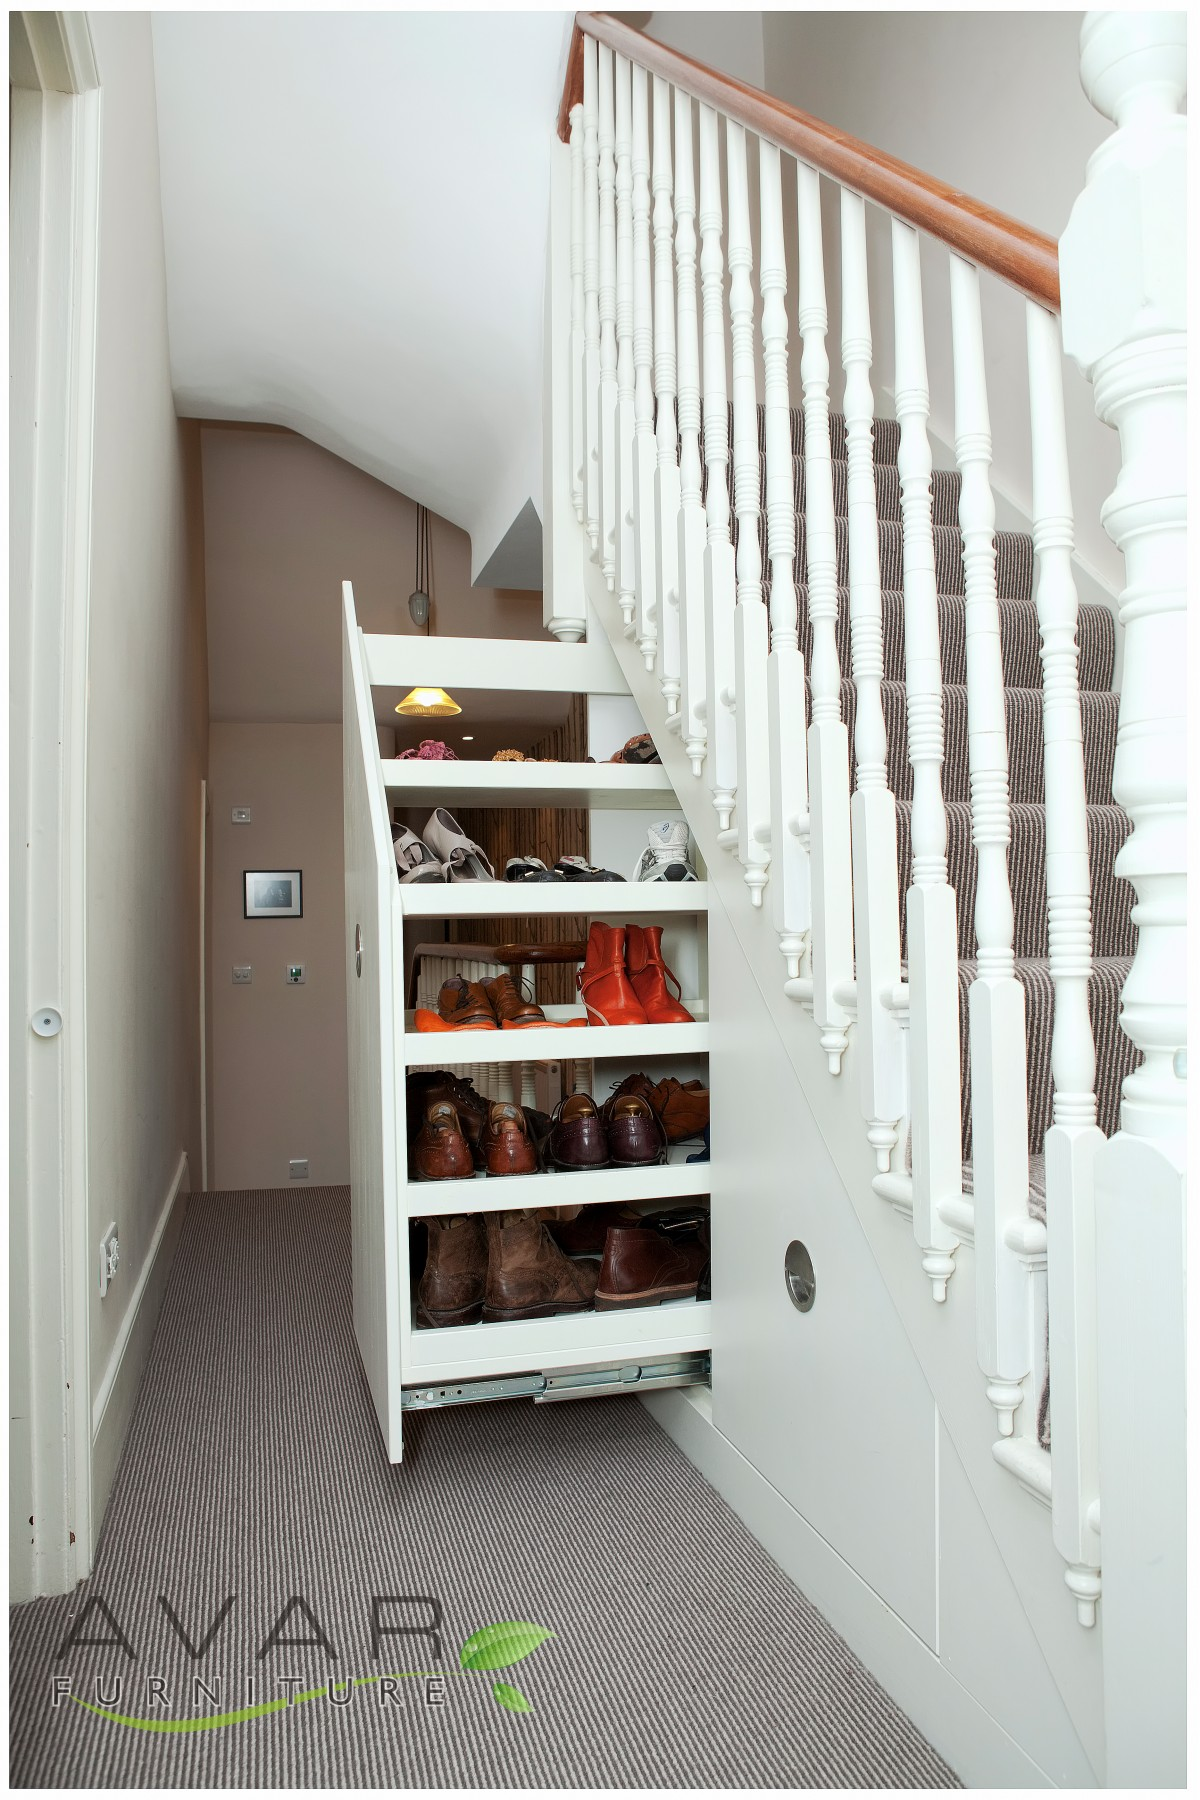 Under stairs storage ideas gallery 14 north london for Understairs storage